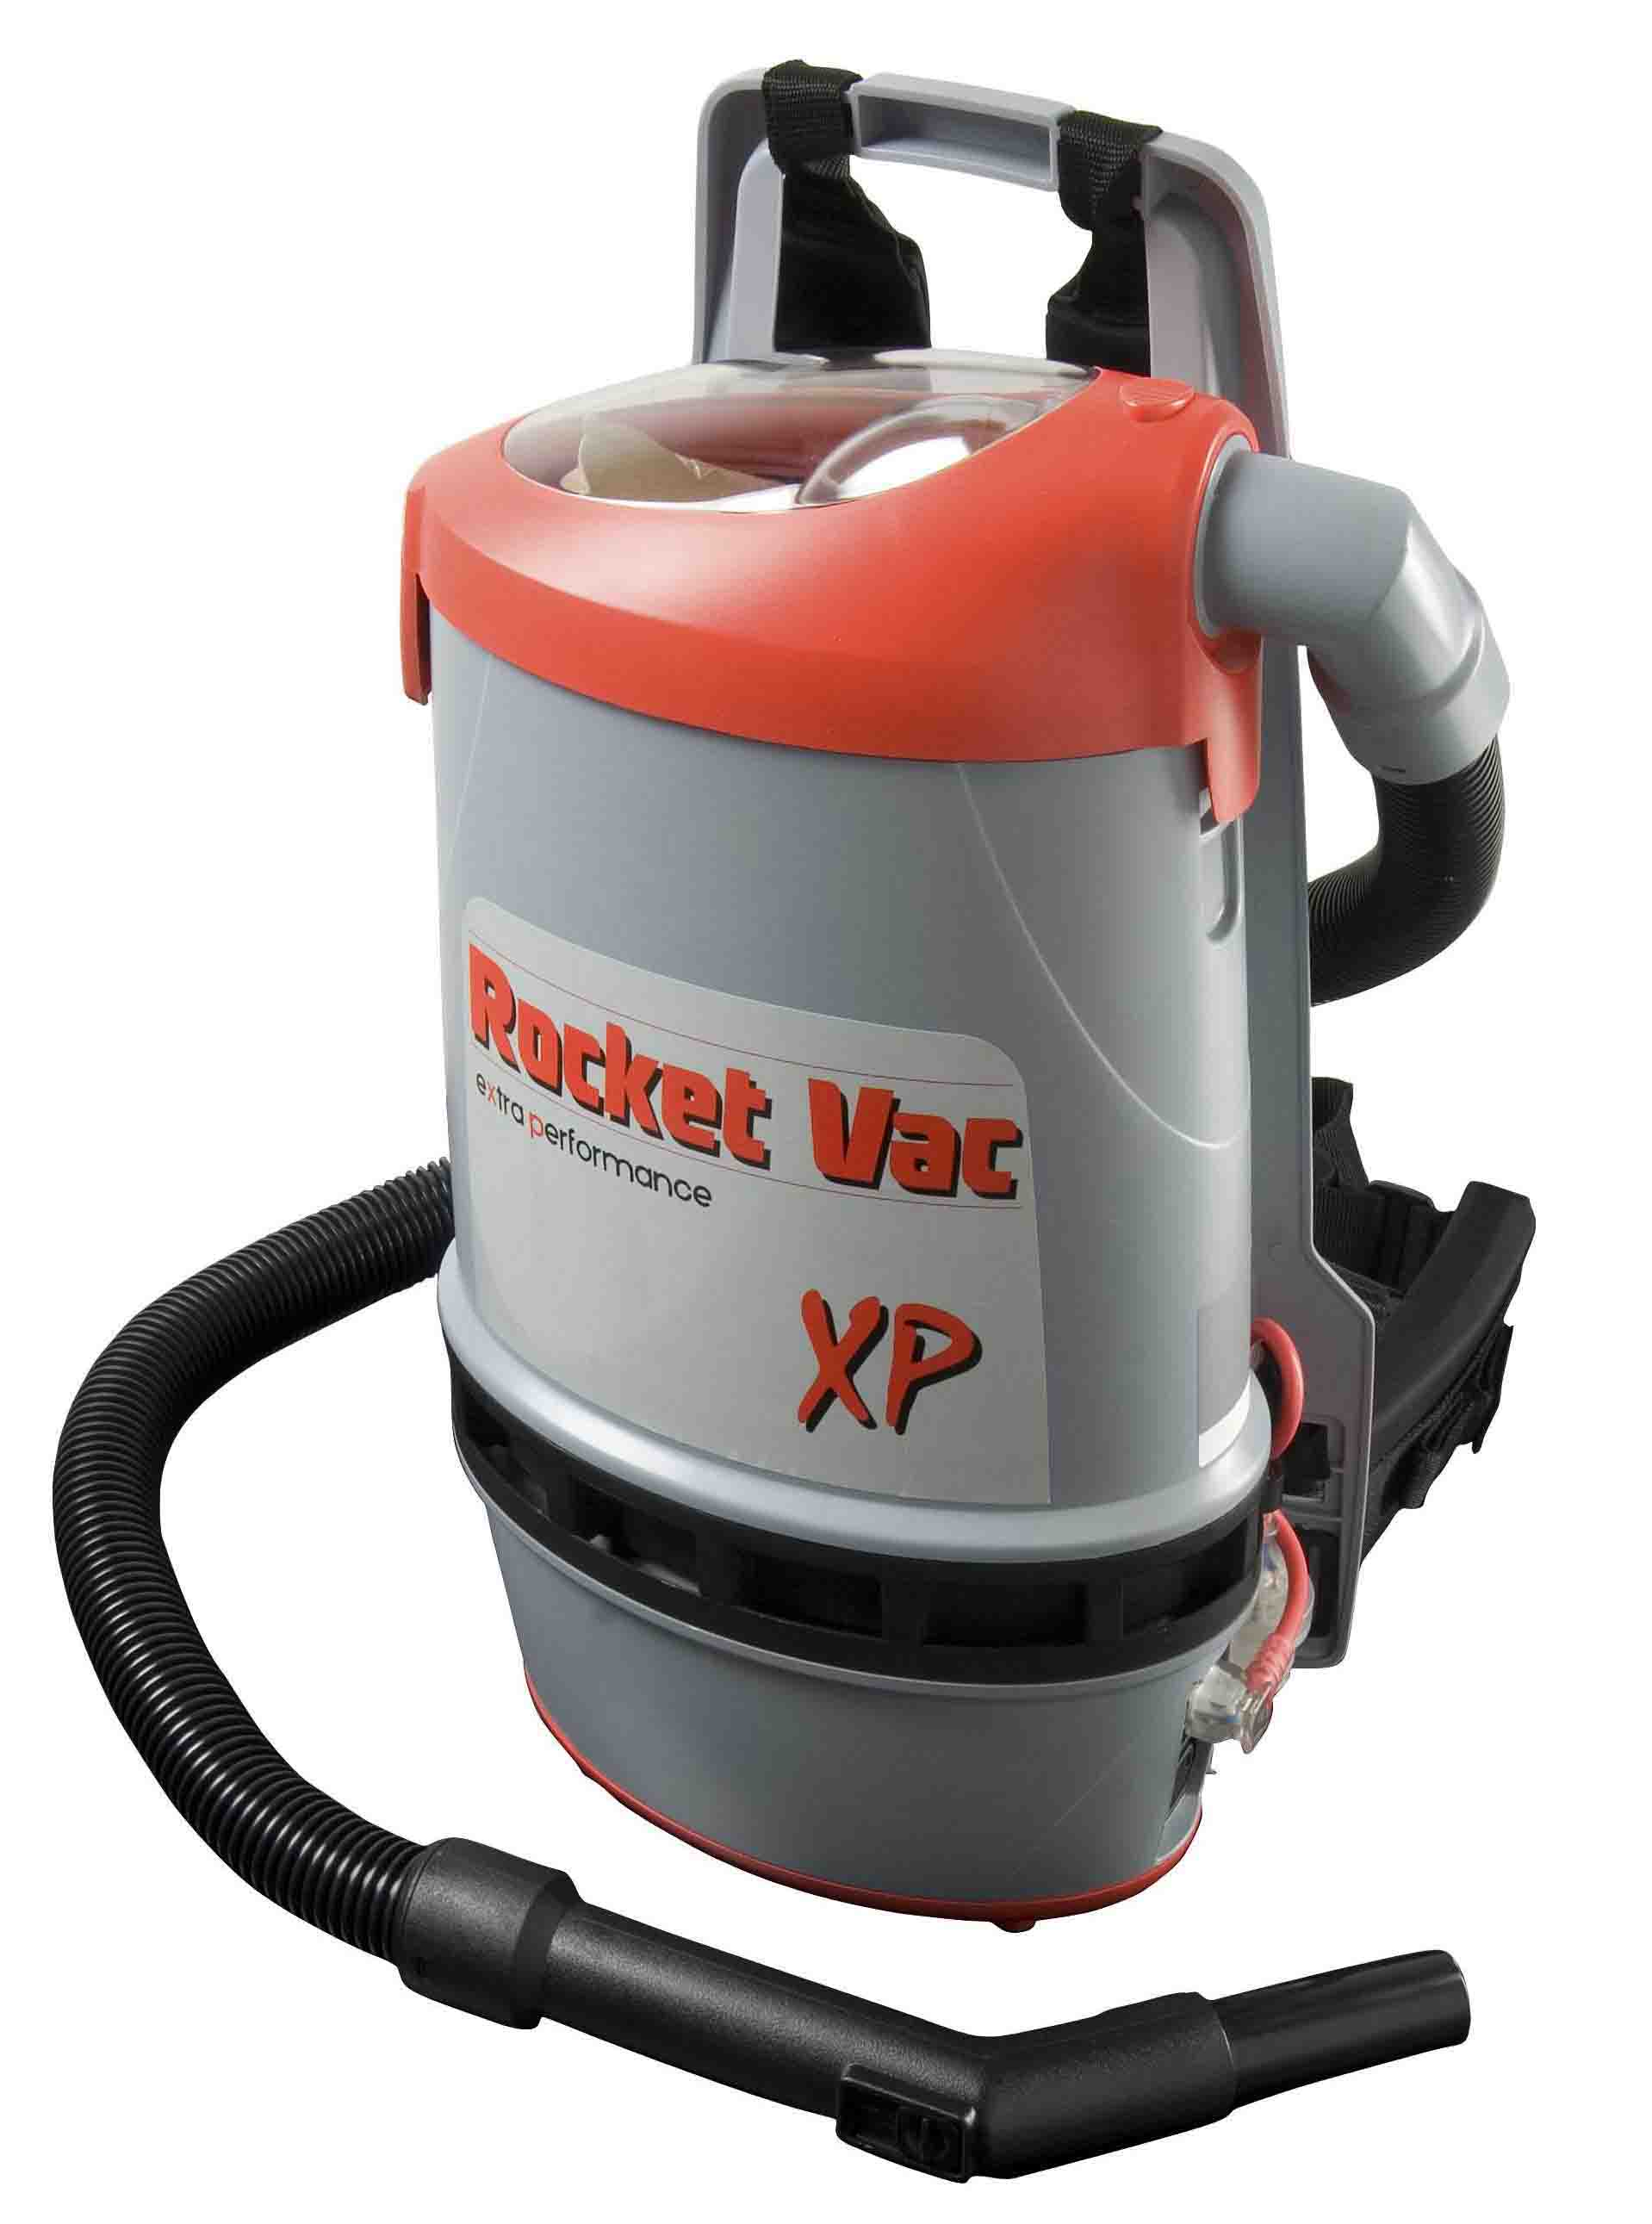 Hako Rocket Vac Xp Commercial Backpack Vacuum Cleaner